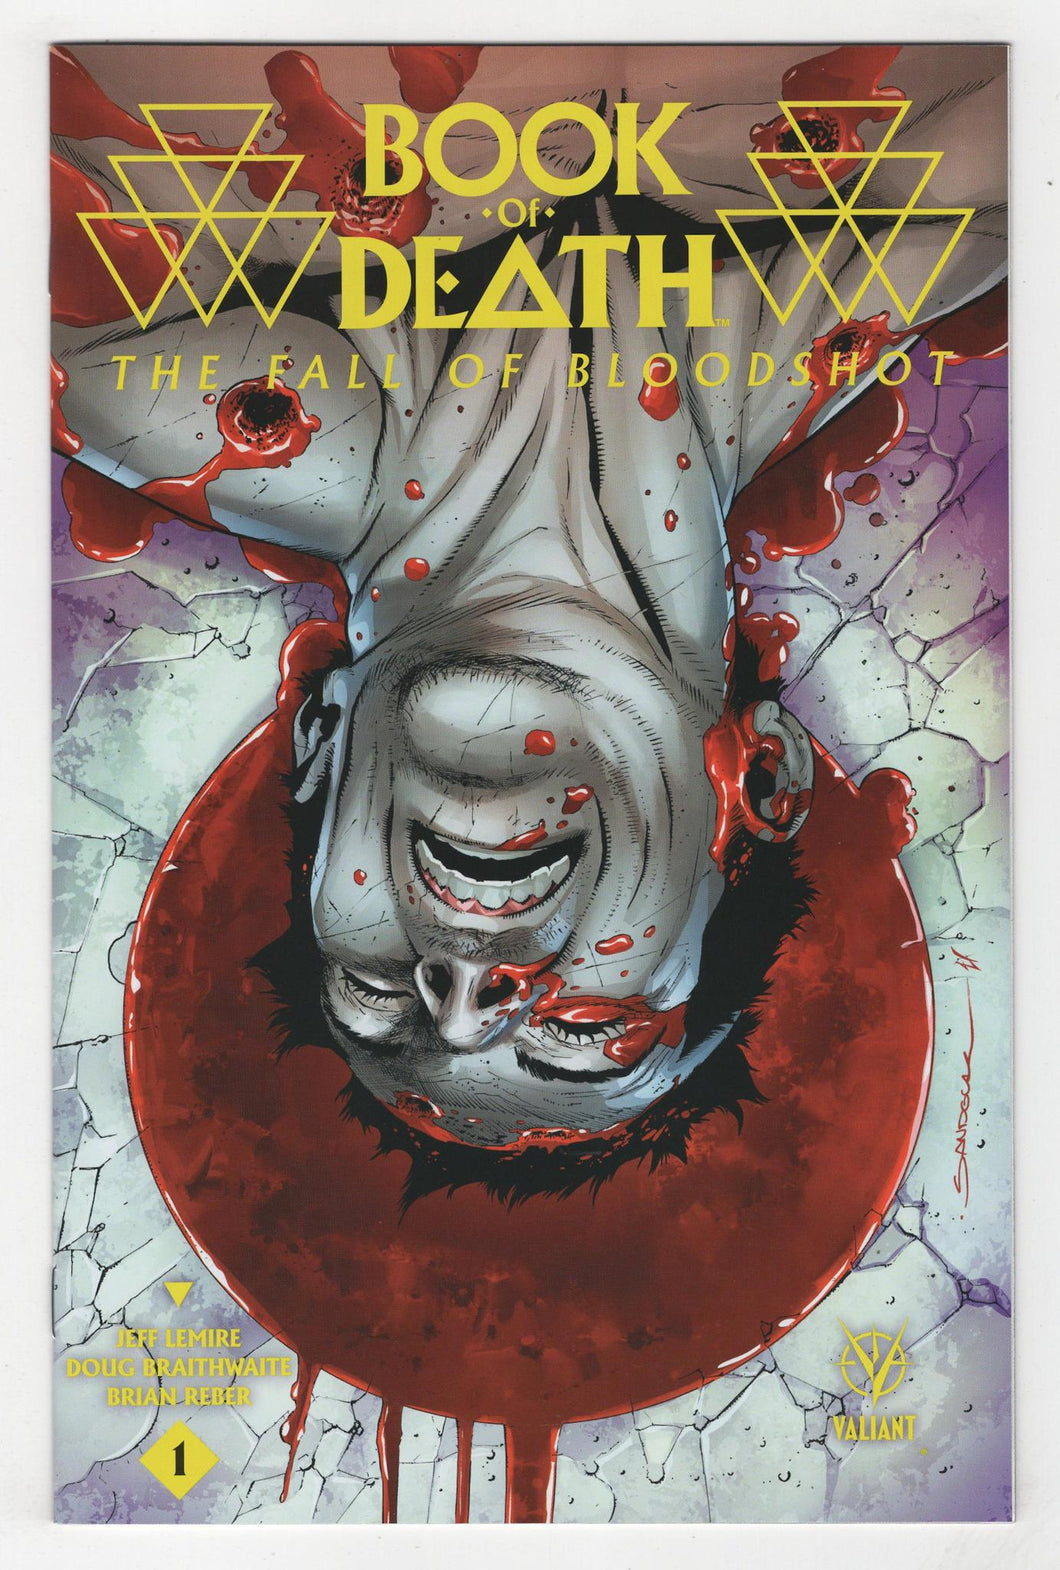 Book of Death Fall of Bloodshot #1 2nd Printing Cover Front